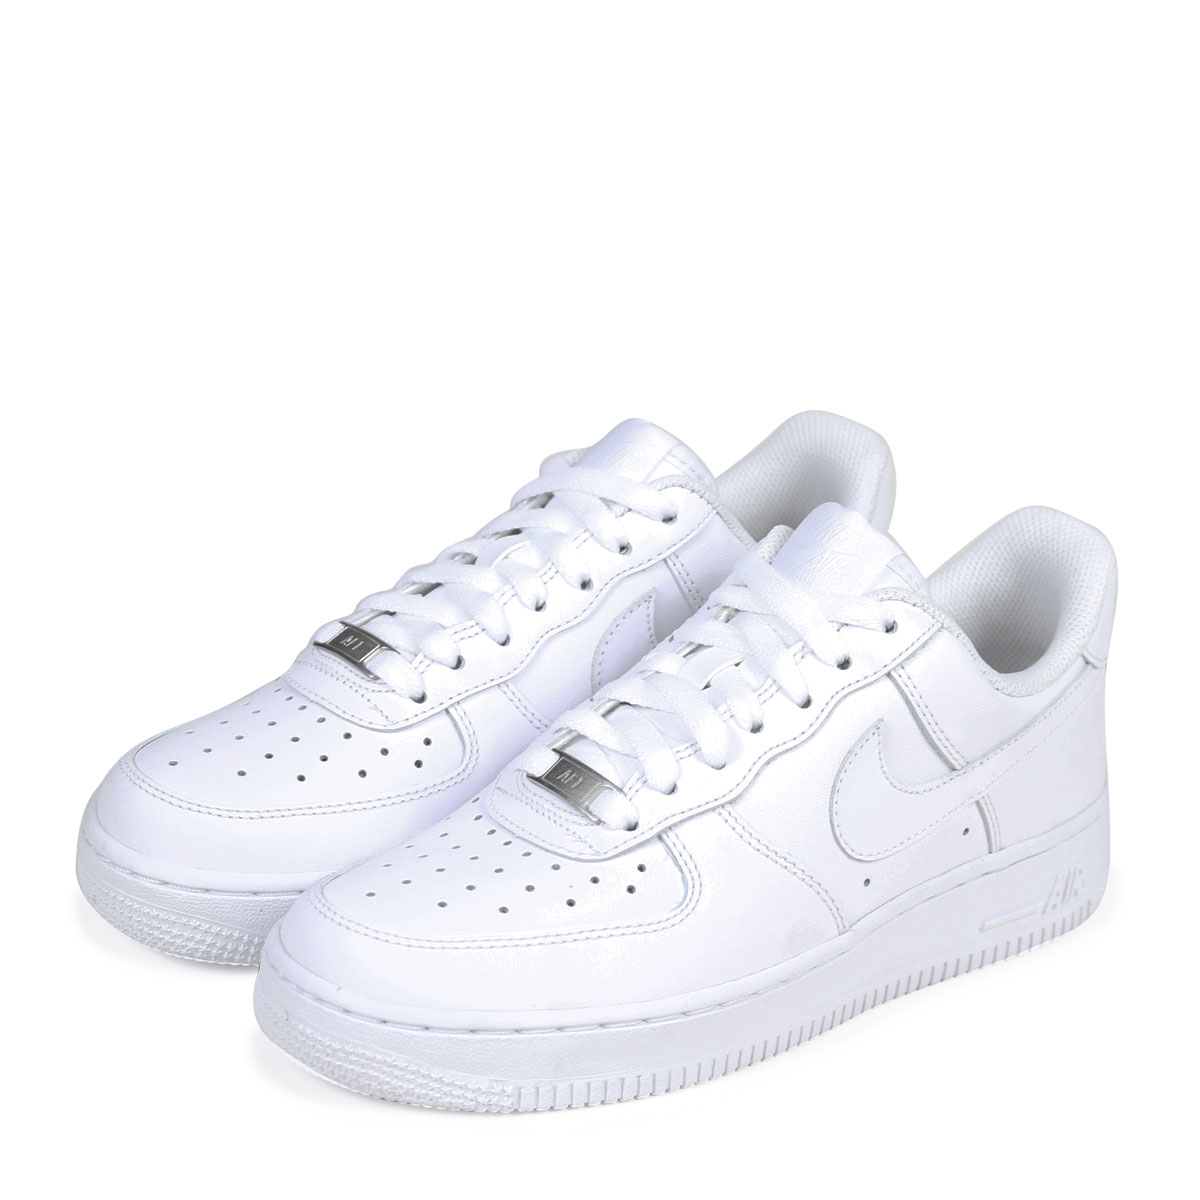 buy online 8fbfa 4e6e5 Nike NIKE air force 1 lady s sneakers WMNS AIR FORCE 1 07 315,115-112 white  ...